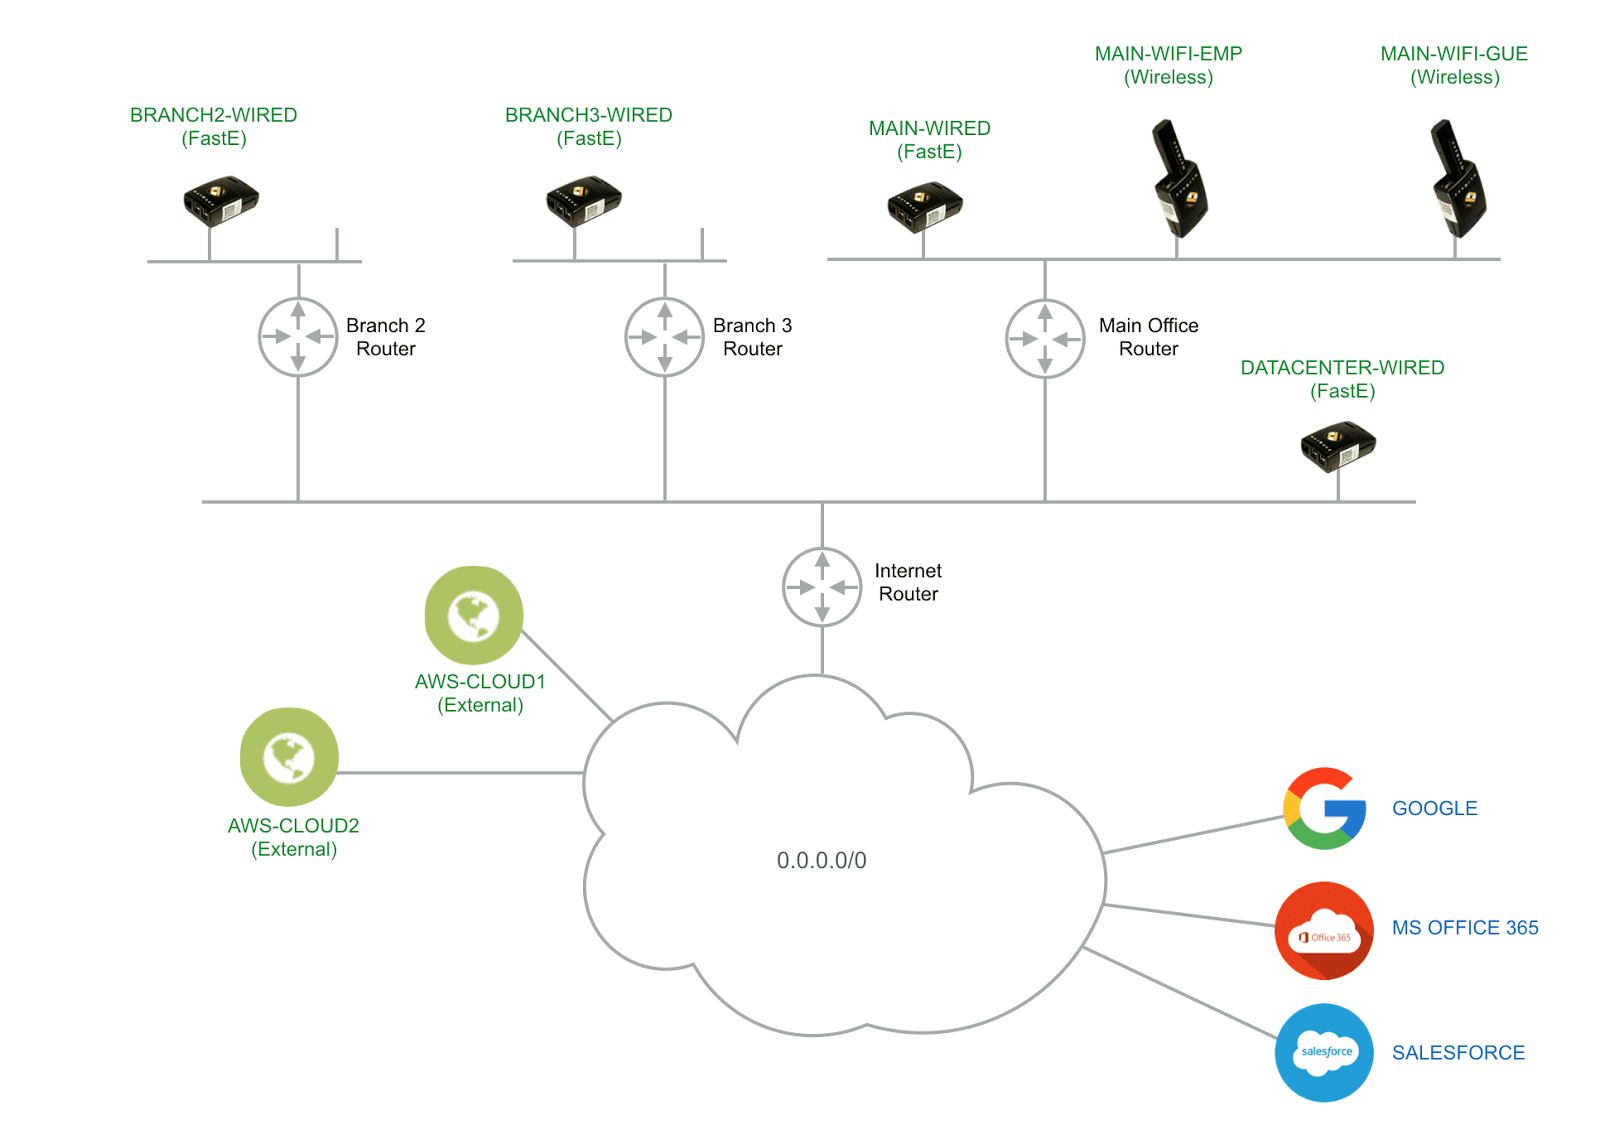 network troubleshooting diagram with icons